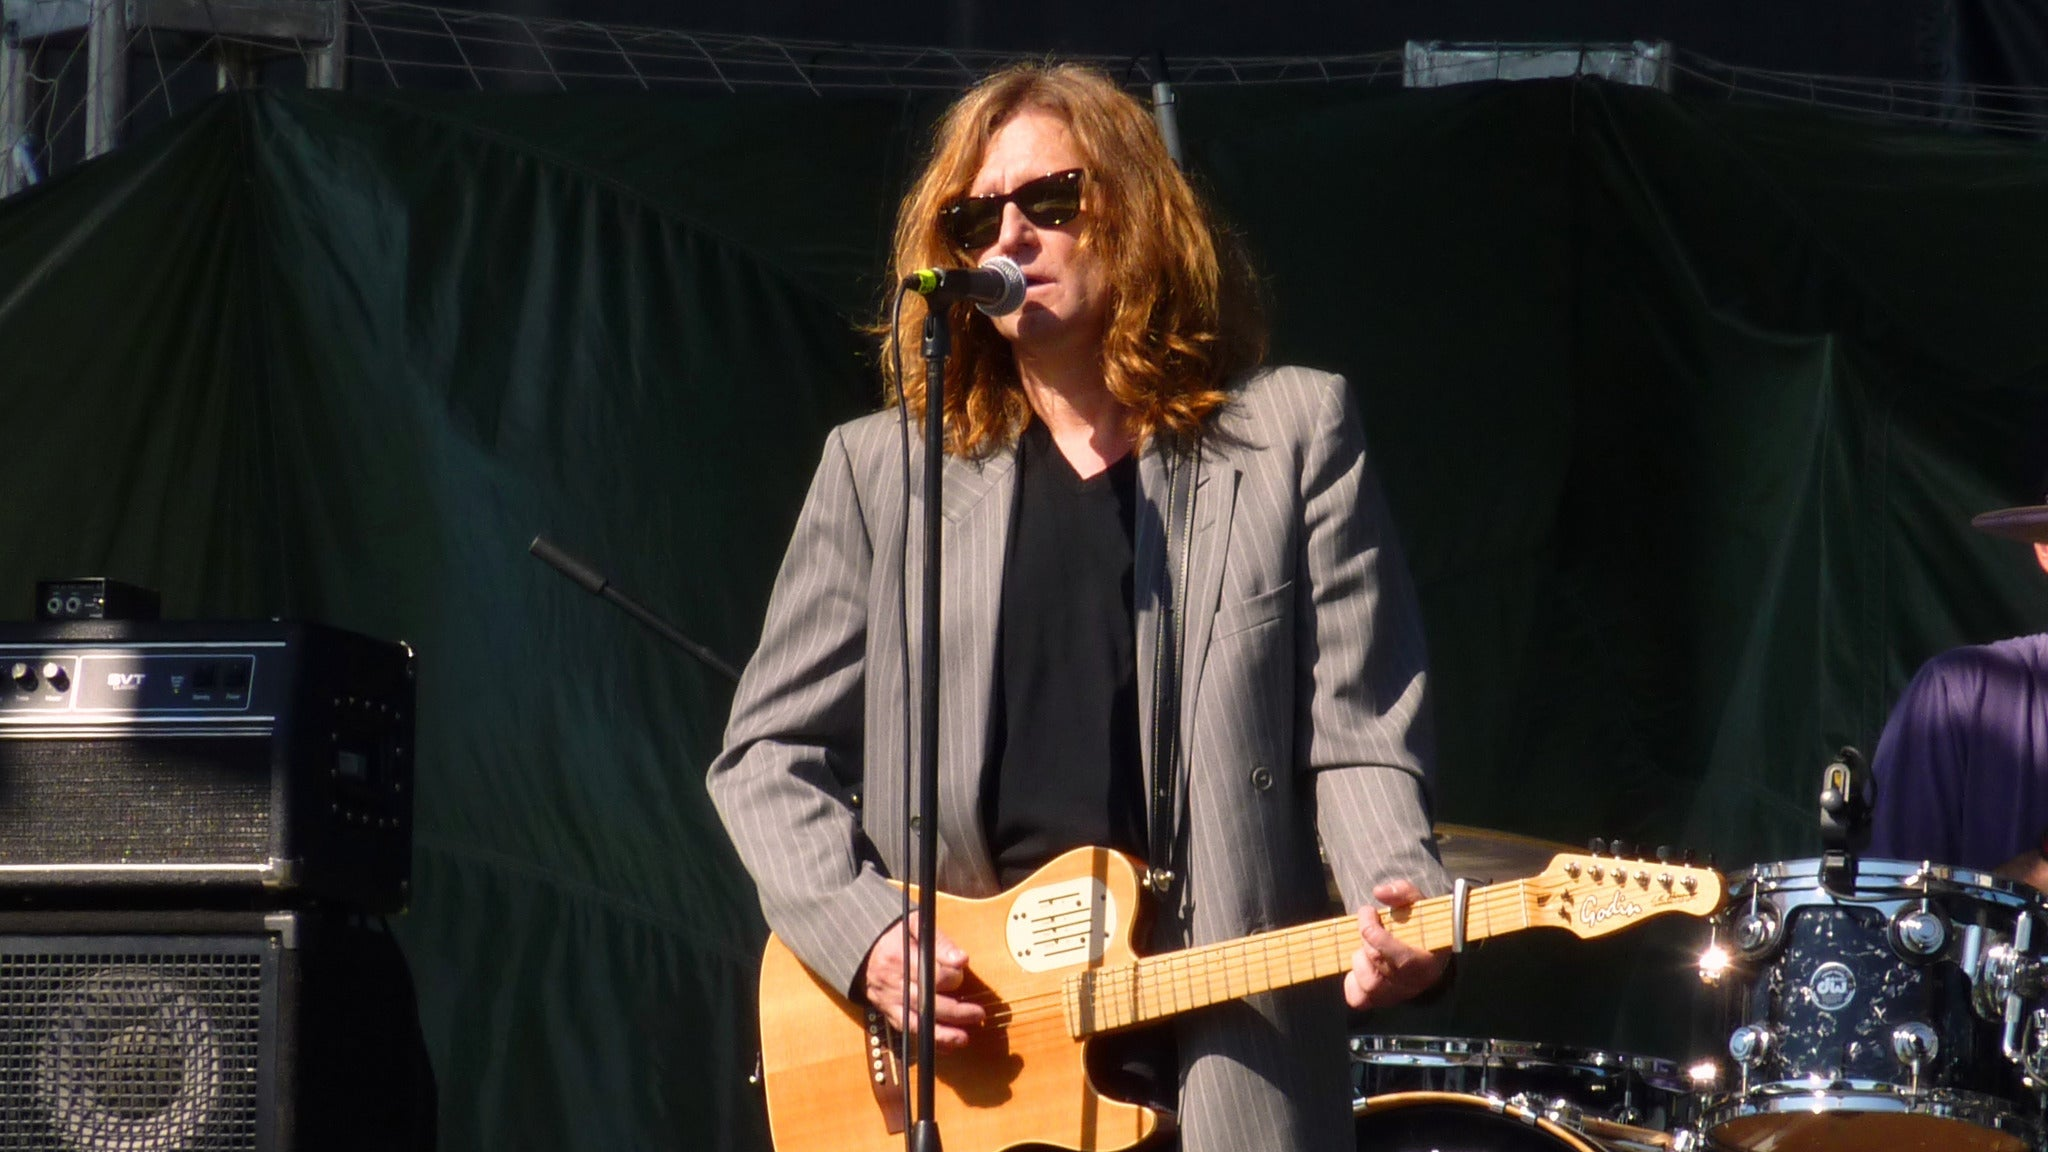 John Waite at The Coach House